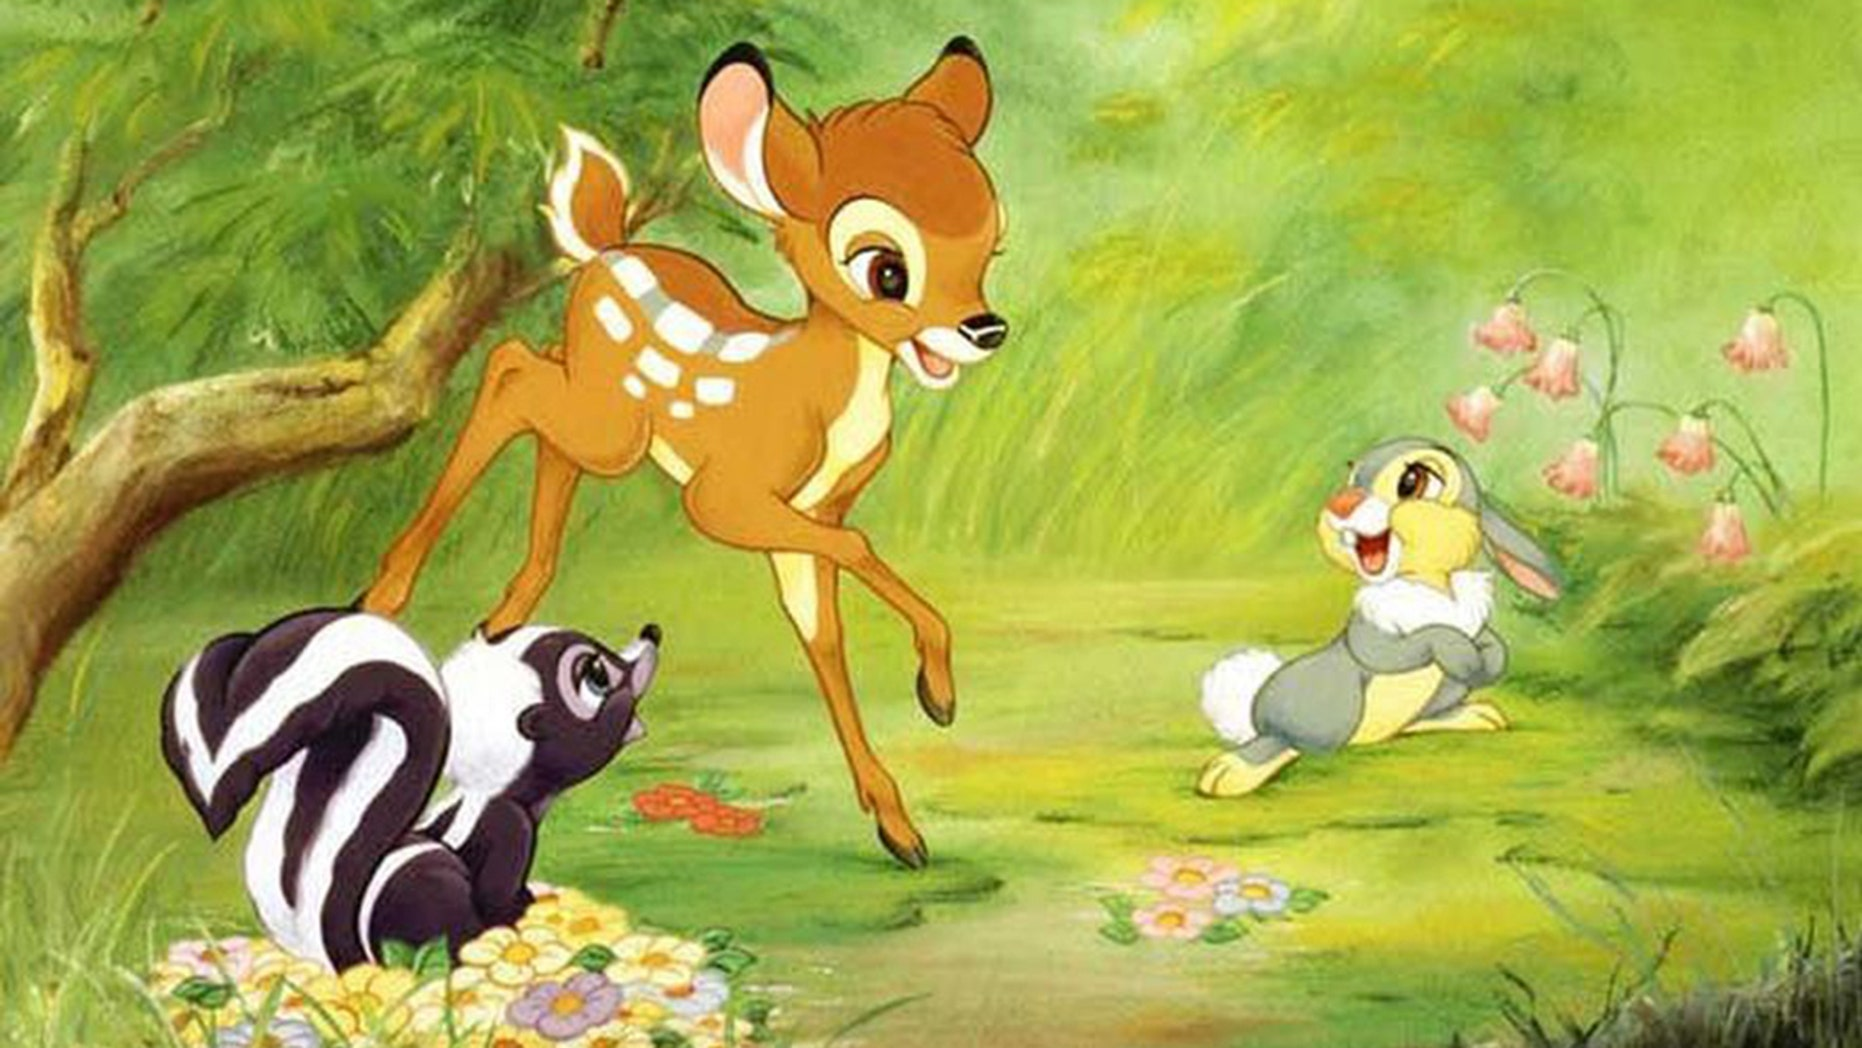 Poacher who killed hundreds of deer sentenced to repeatedly watch 'Bambi'